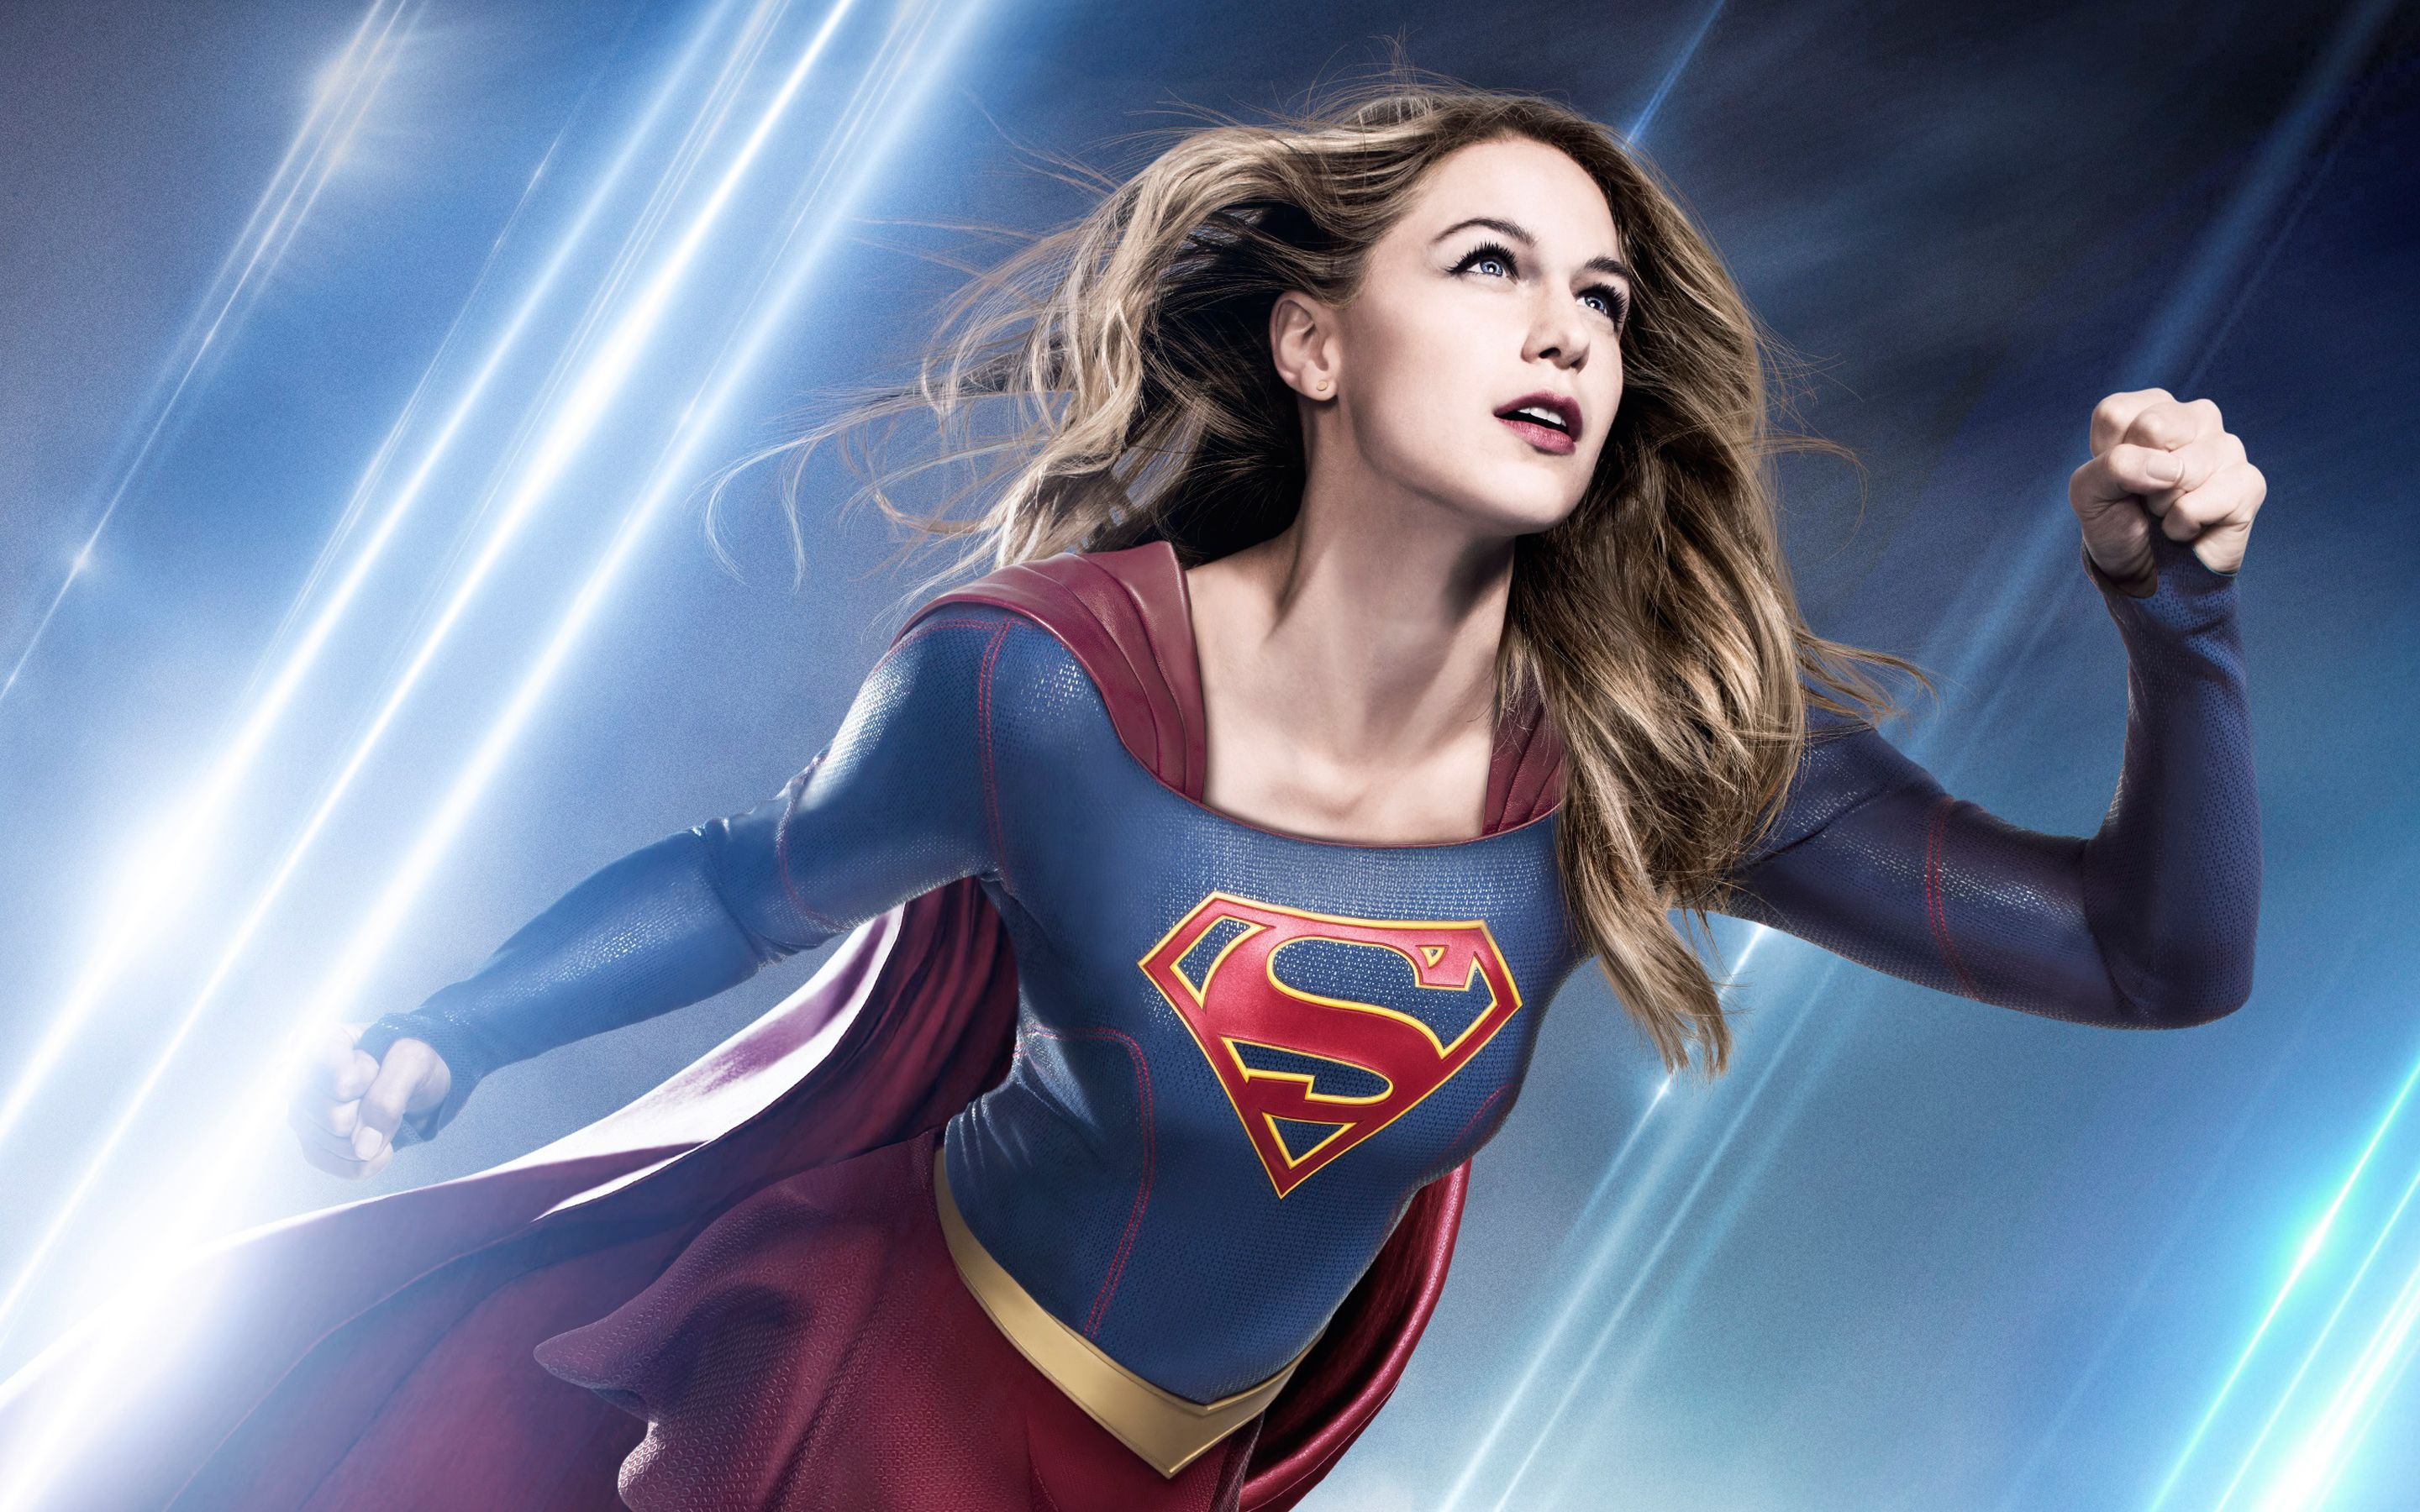 Supergirl Season 3 Hd Wallpaper Supergirl Season Supergirl Tv